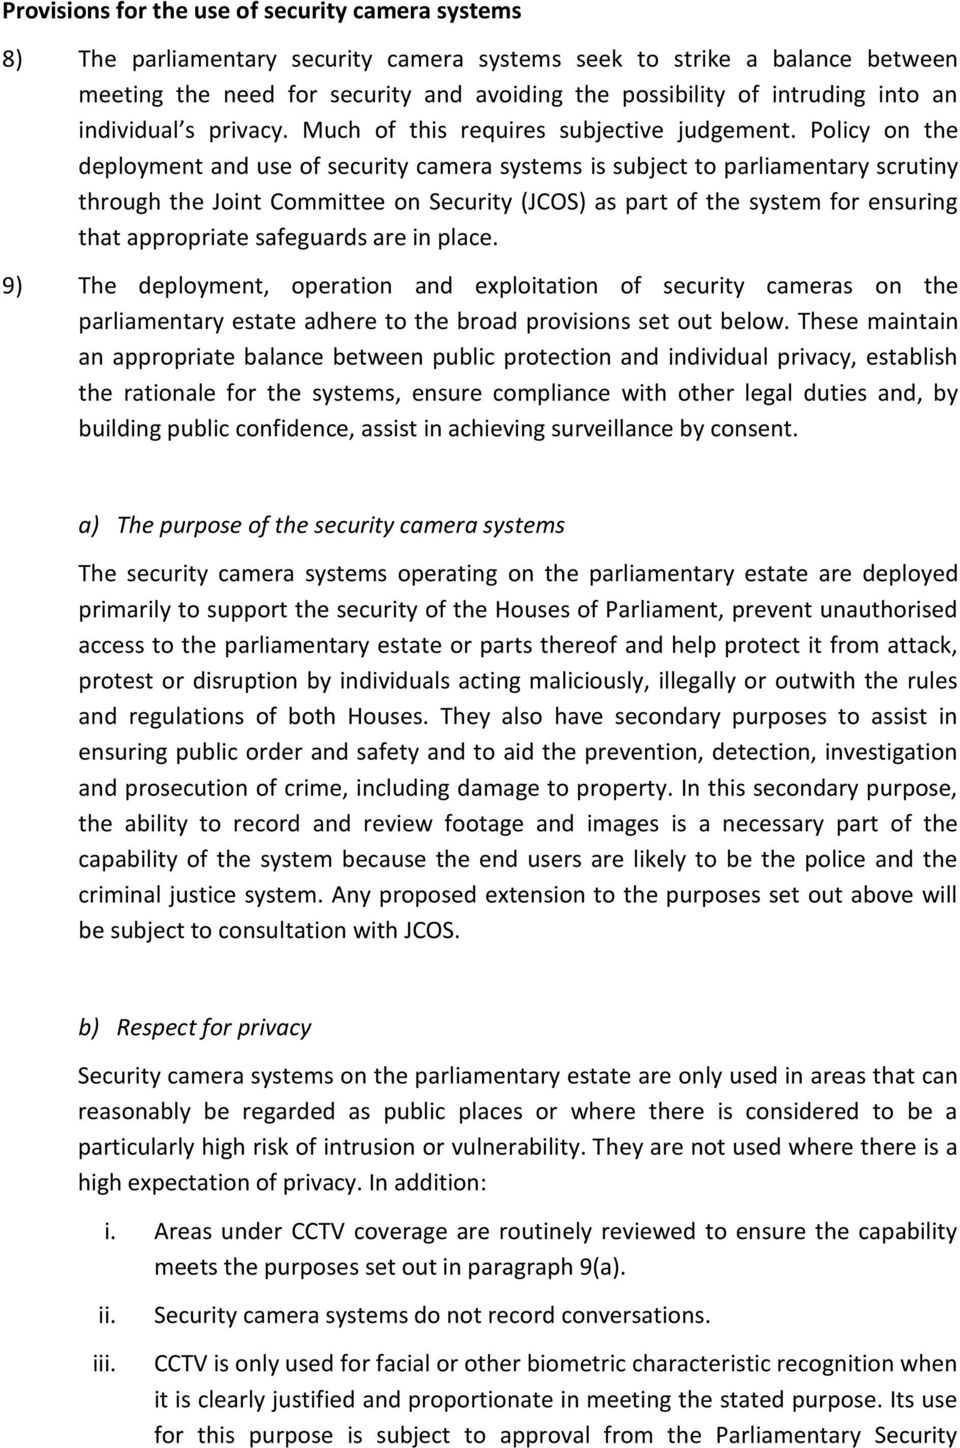 Policy on the deployment and use of security camera systems is subject to parliamentary scrutiny through the Joint Committee on Security (JCOS) as part of the system for ensuring that appropriate